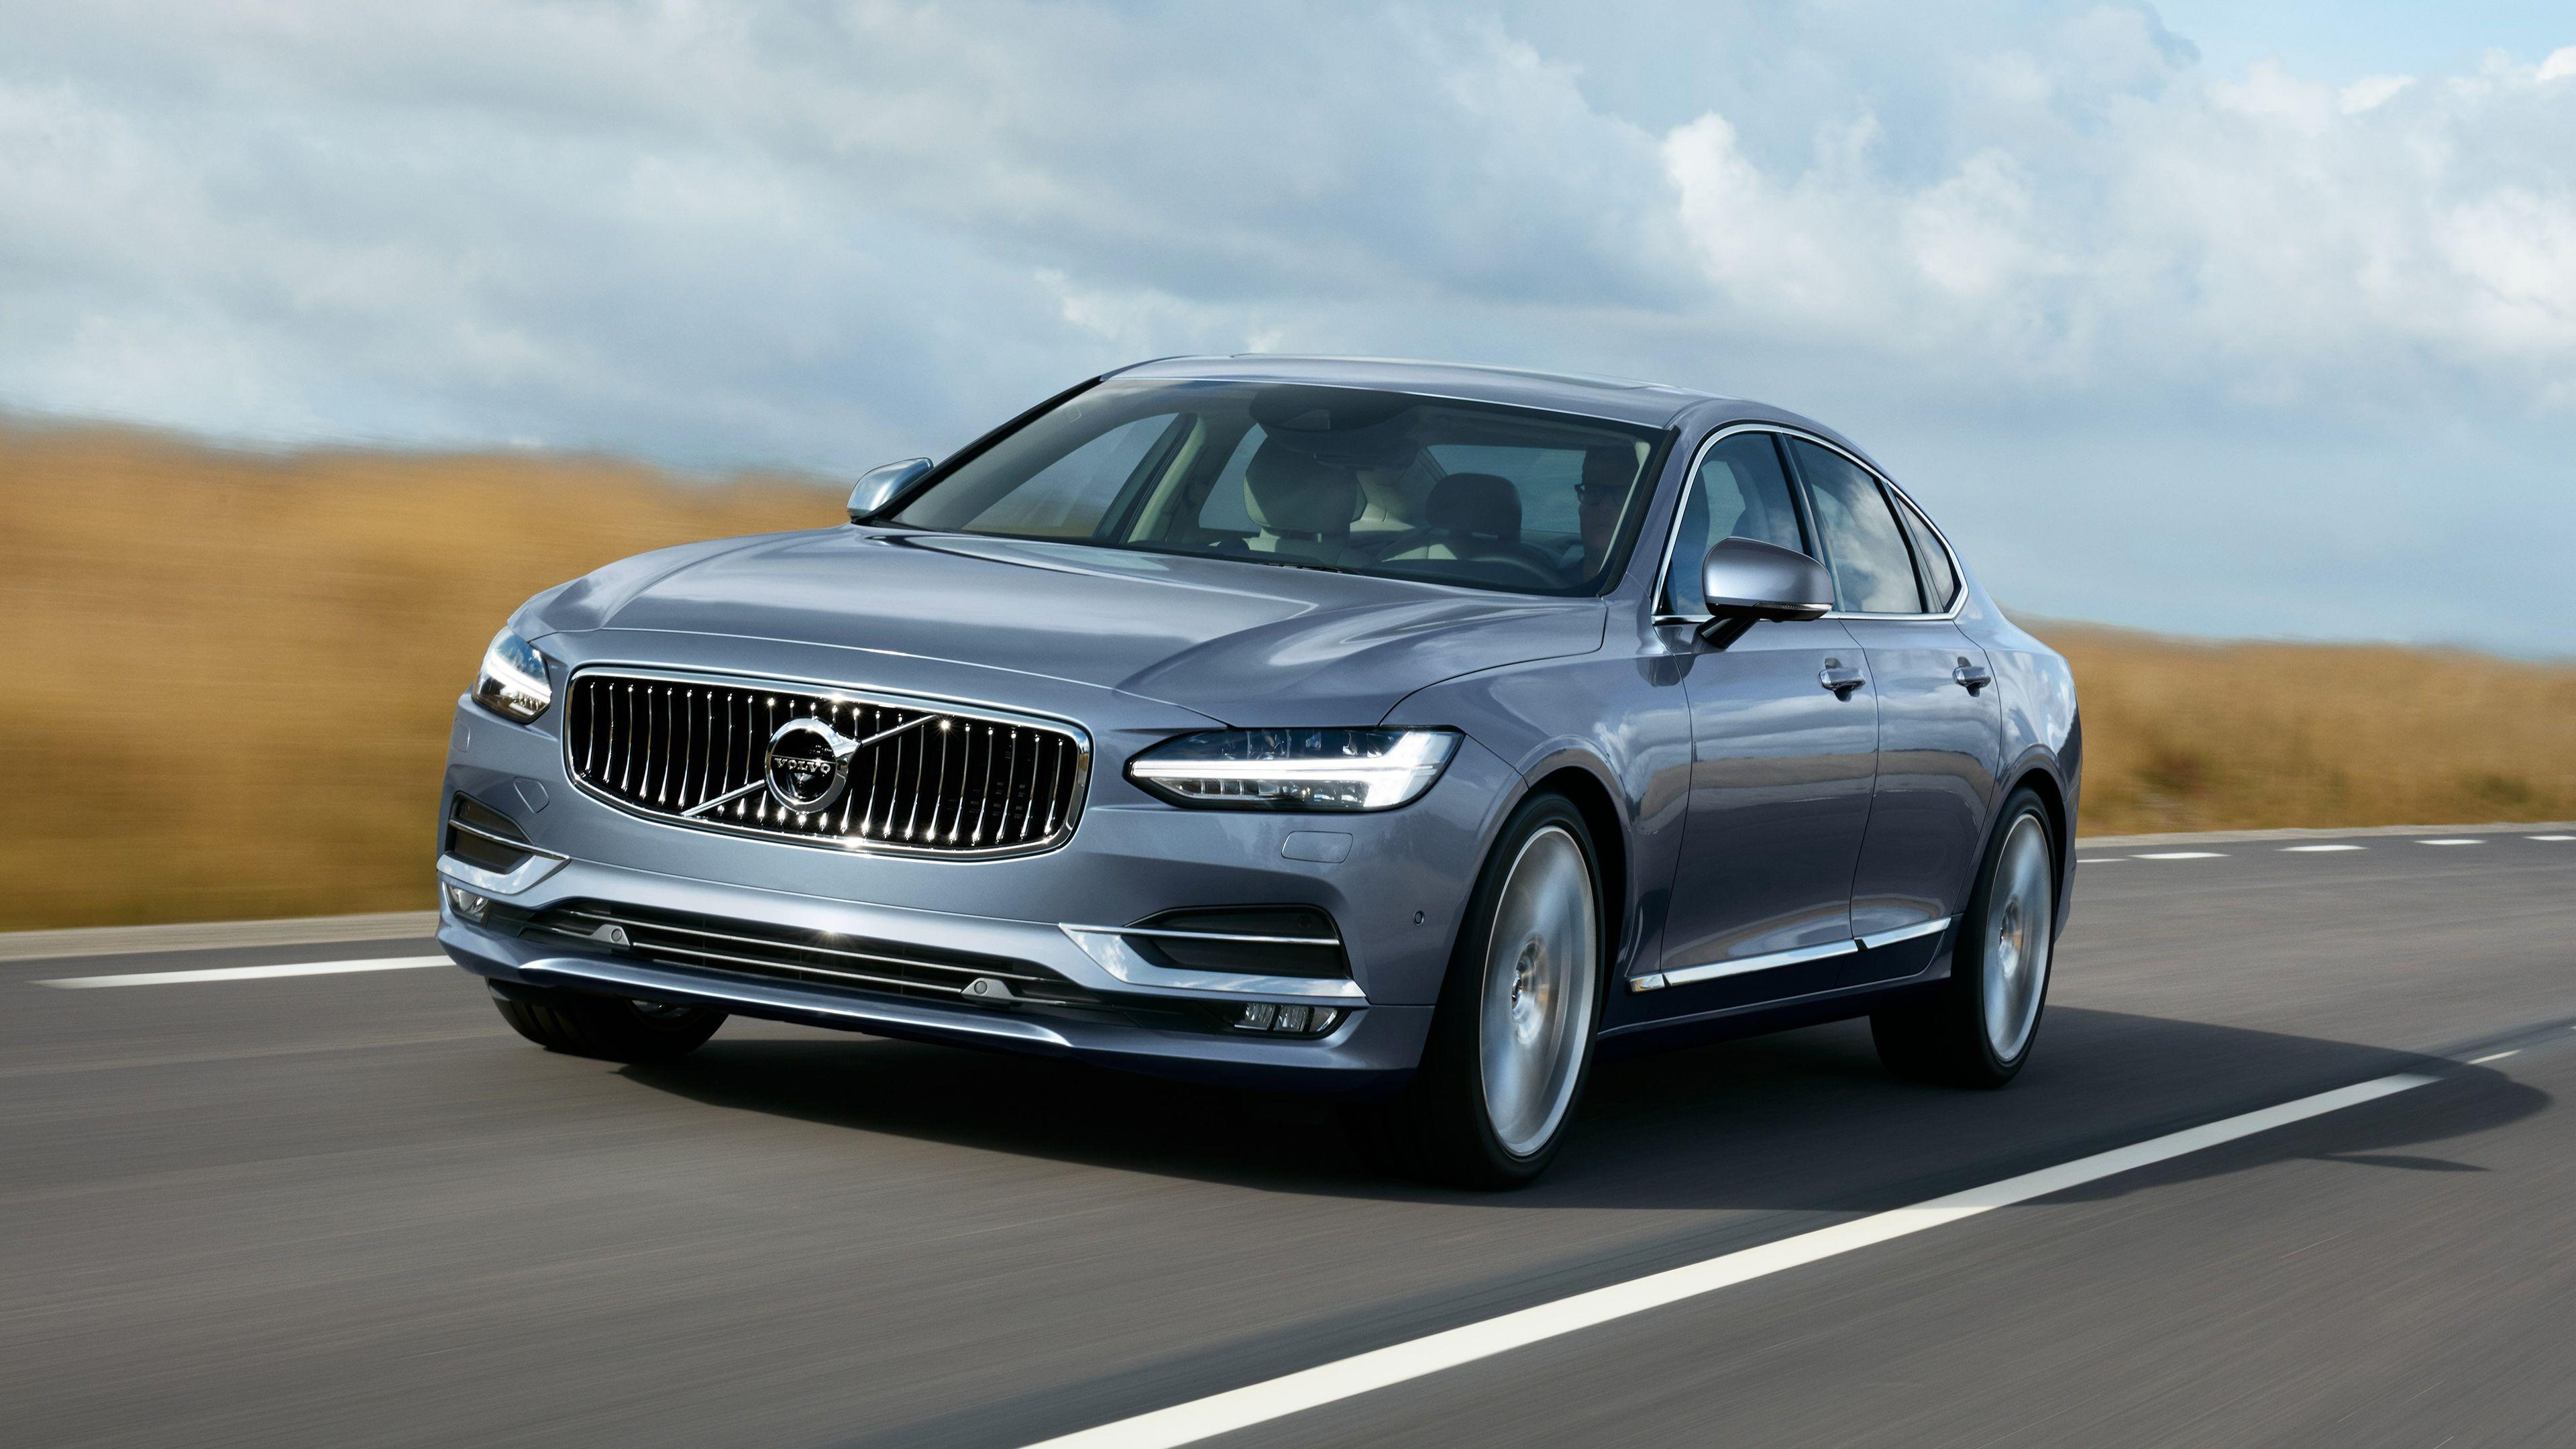 2017 Volvo S90 Wallpaper | HD Car Wallpapers | ID #6767